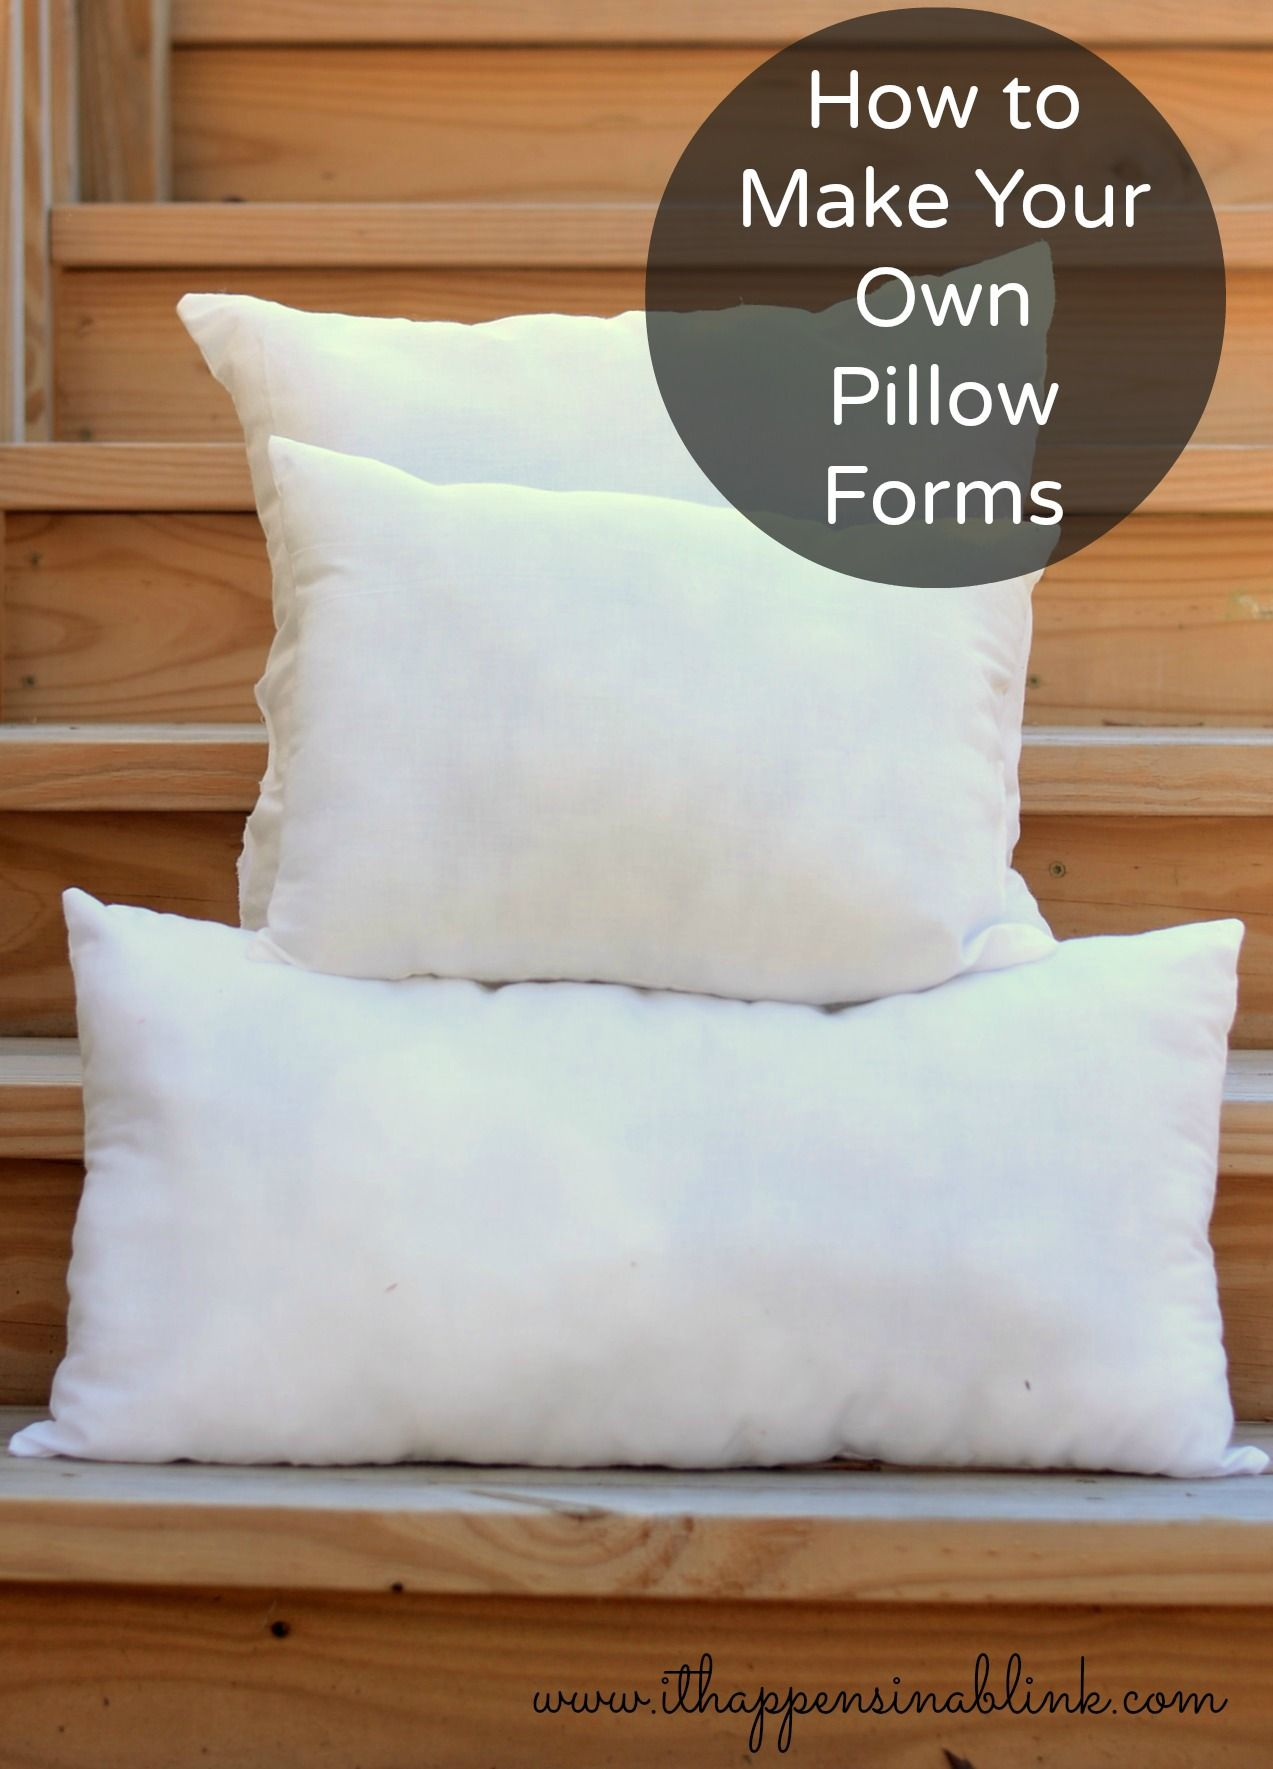 Walmart Pillow Inserts How To Make Your Own Pillow Forms Or Pillow Inserts From It Happens